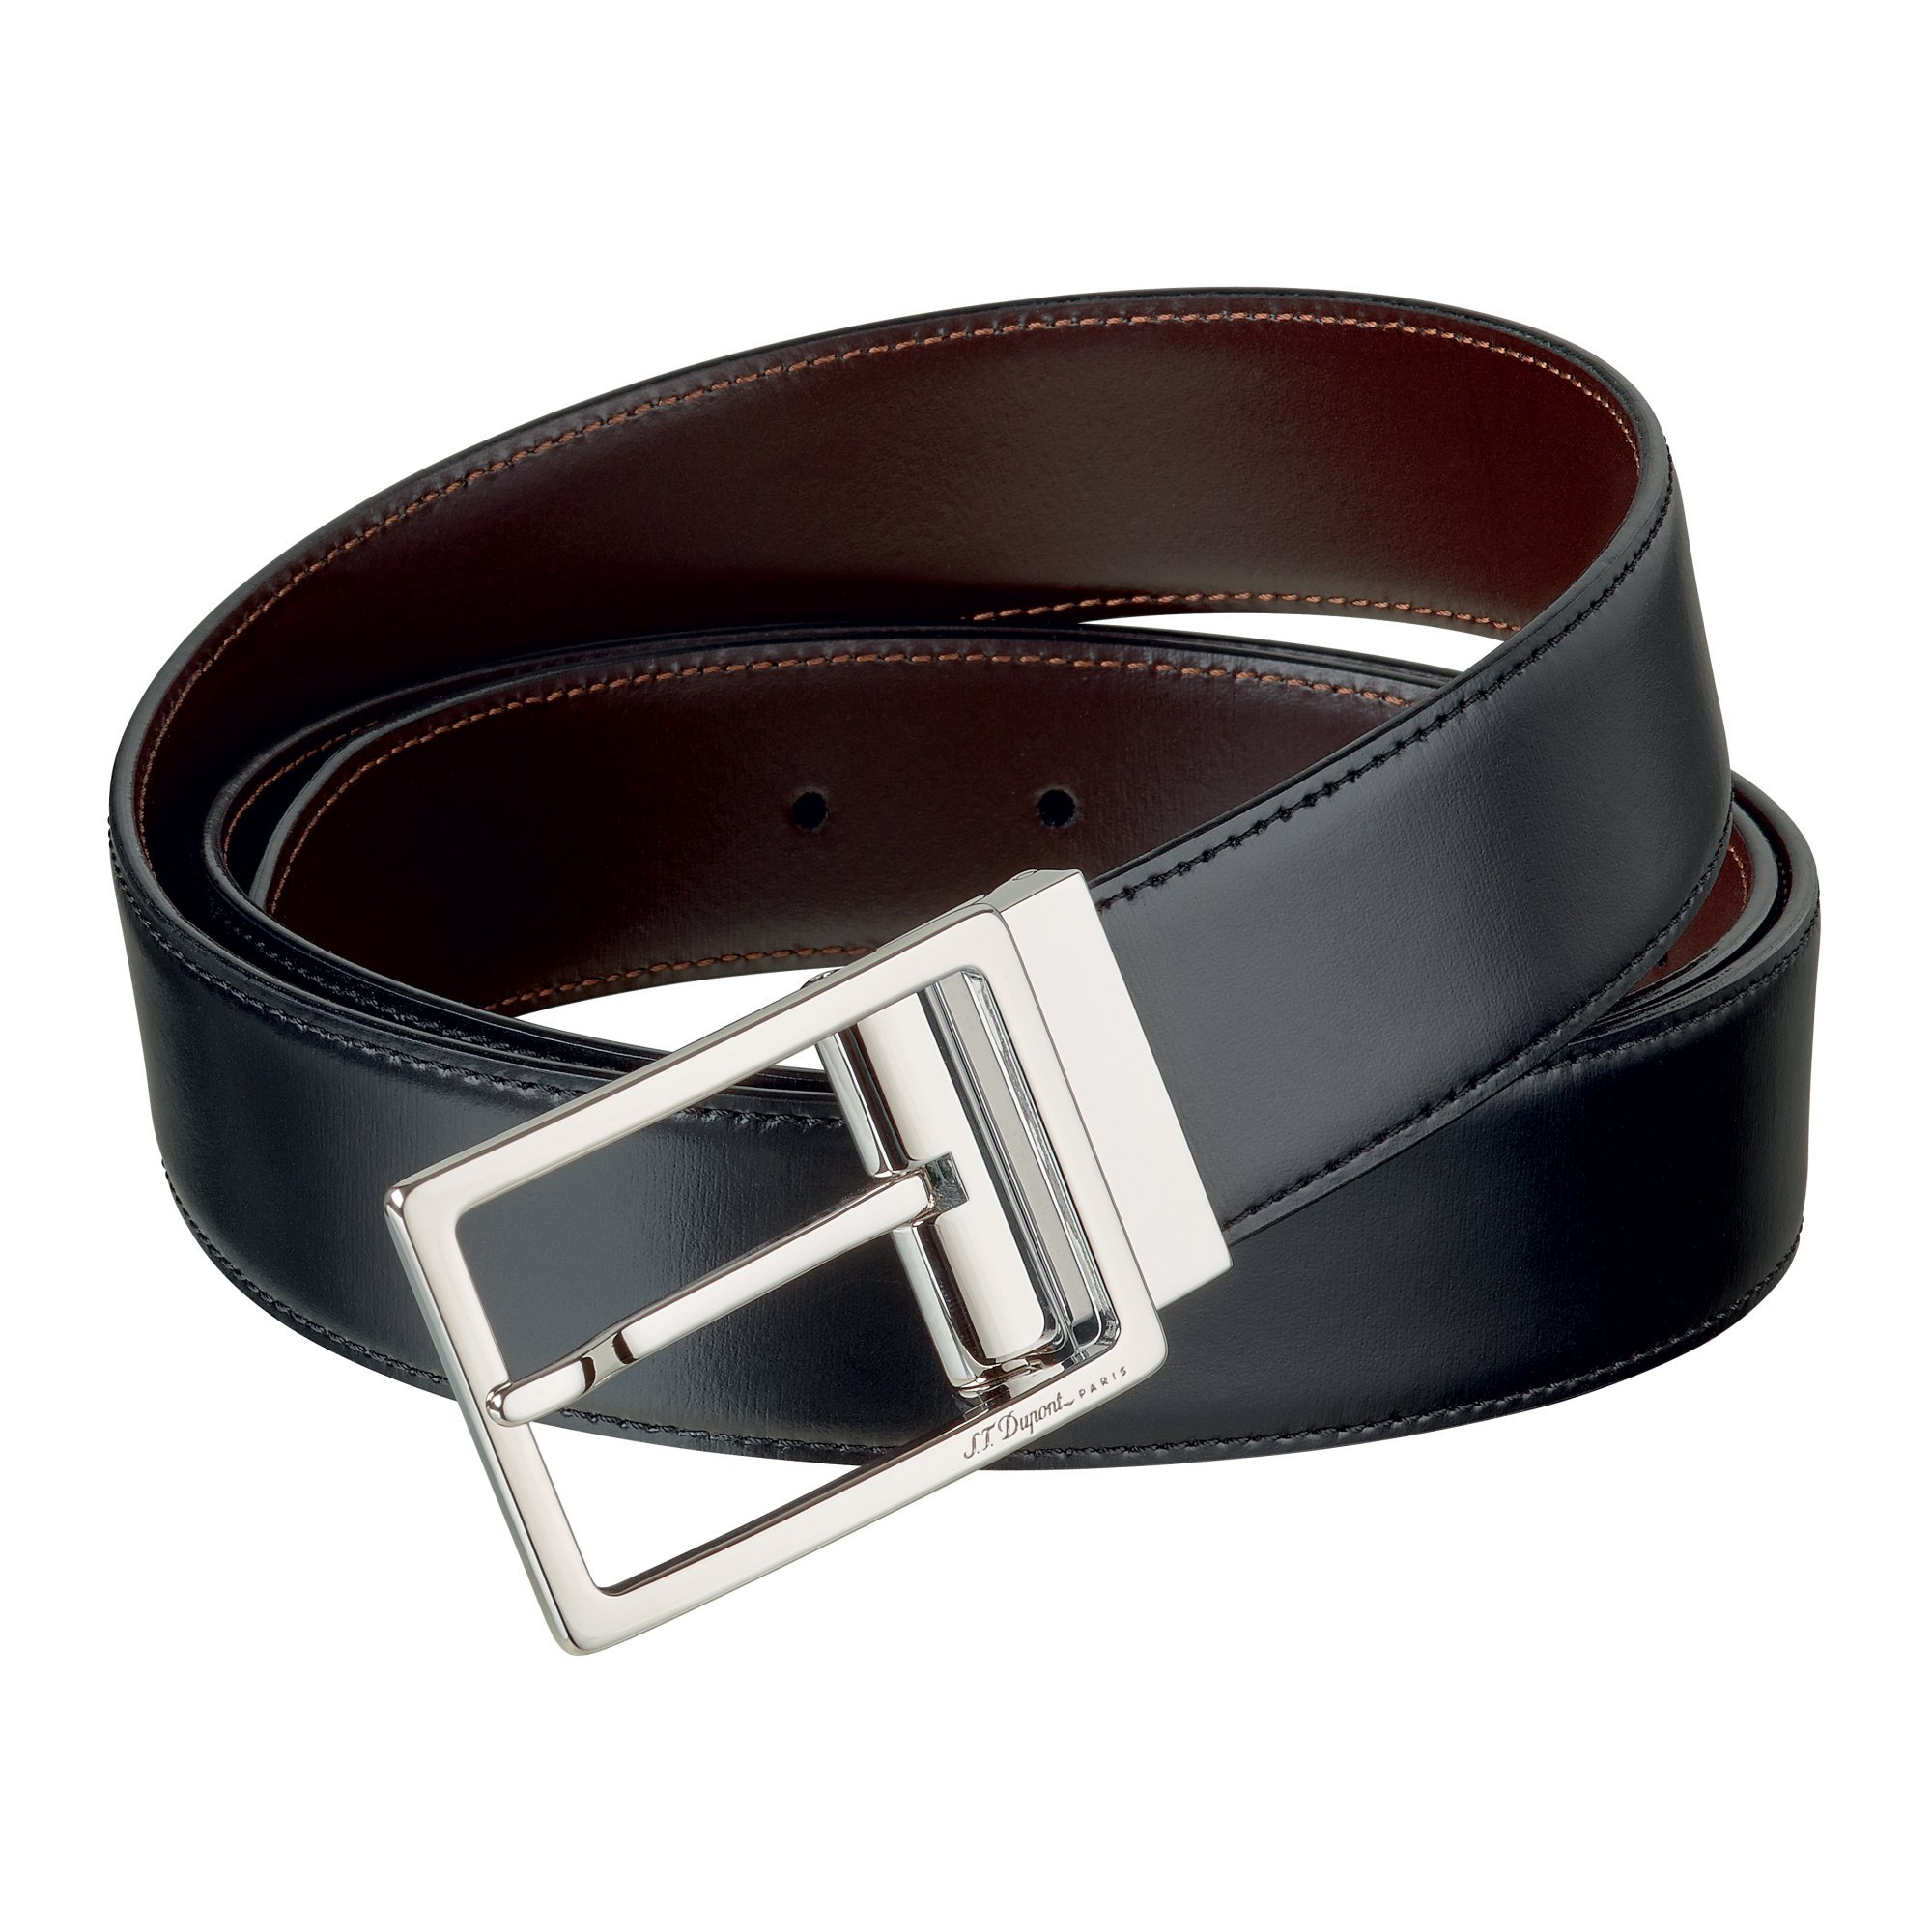 S.T. Dupont 9490120 Palladium Auto-Reversible Buckle Business Belt